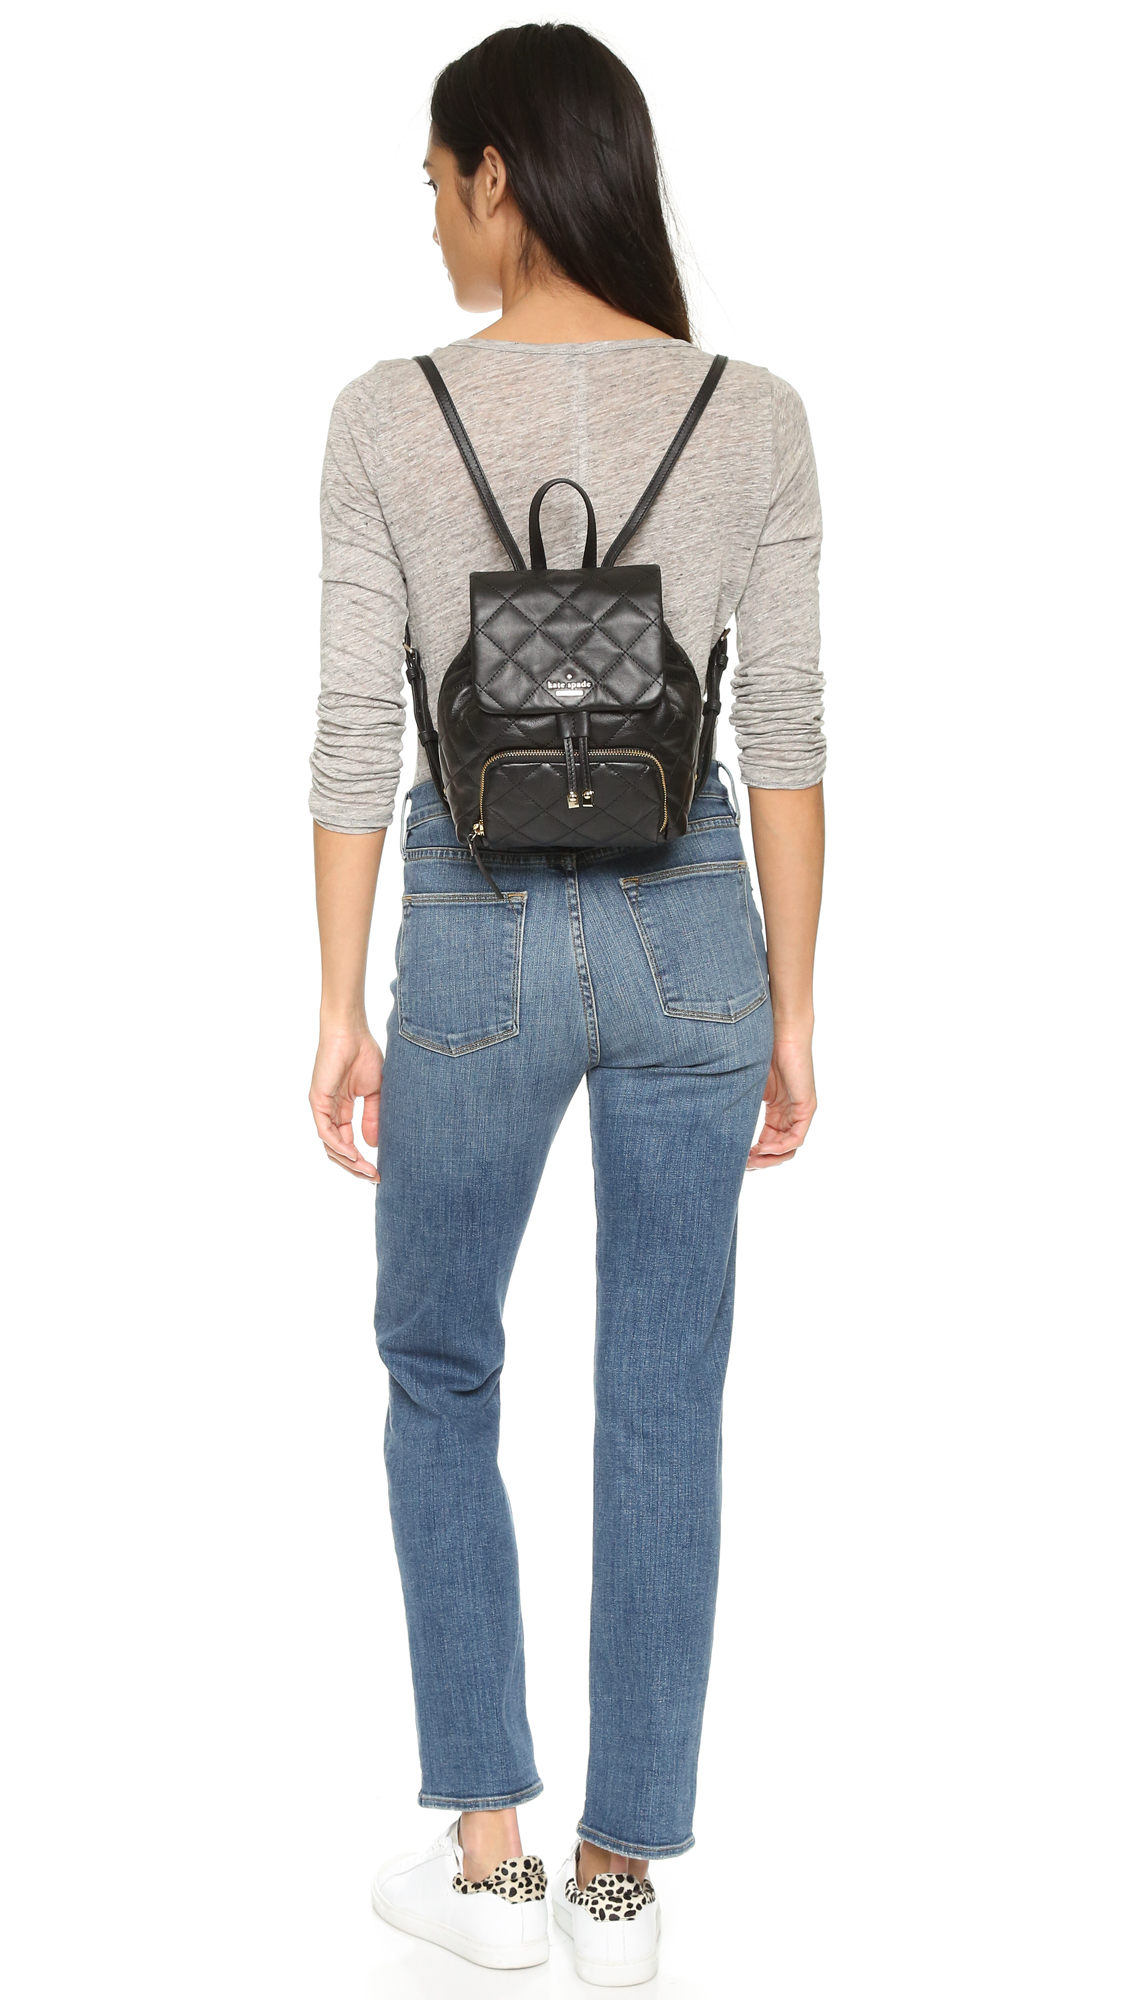 Lyst Kate Spade New York Emerson Place Jessa Backpack